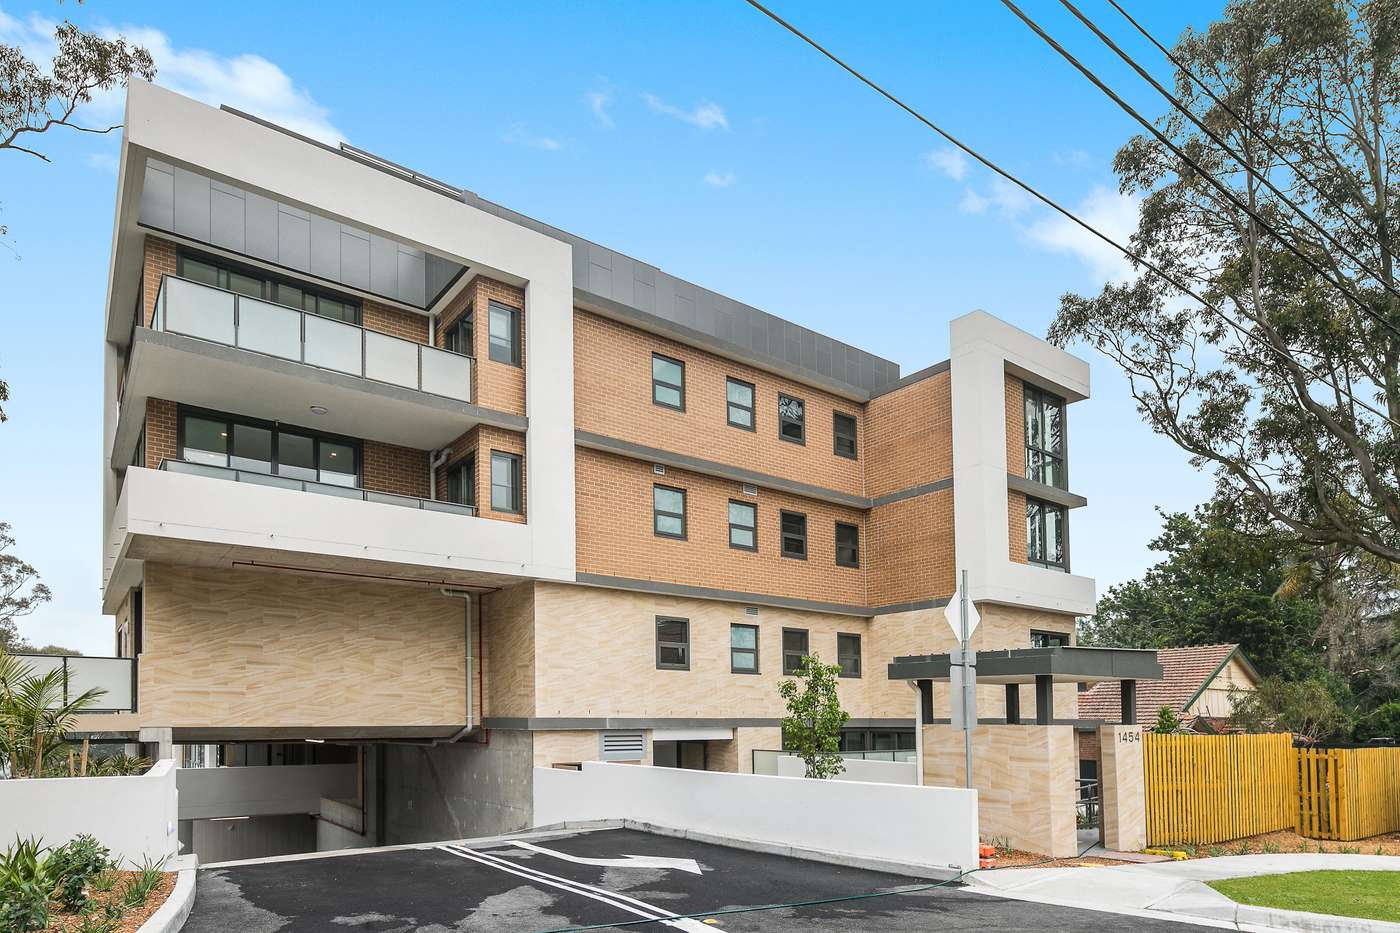 Main view of Homely apartment listing, 203/1454 Pacific Highway, Turramurra, NSW 2074